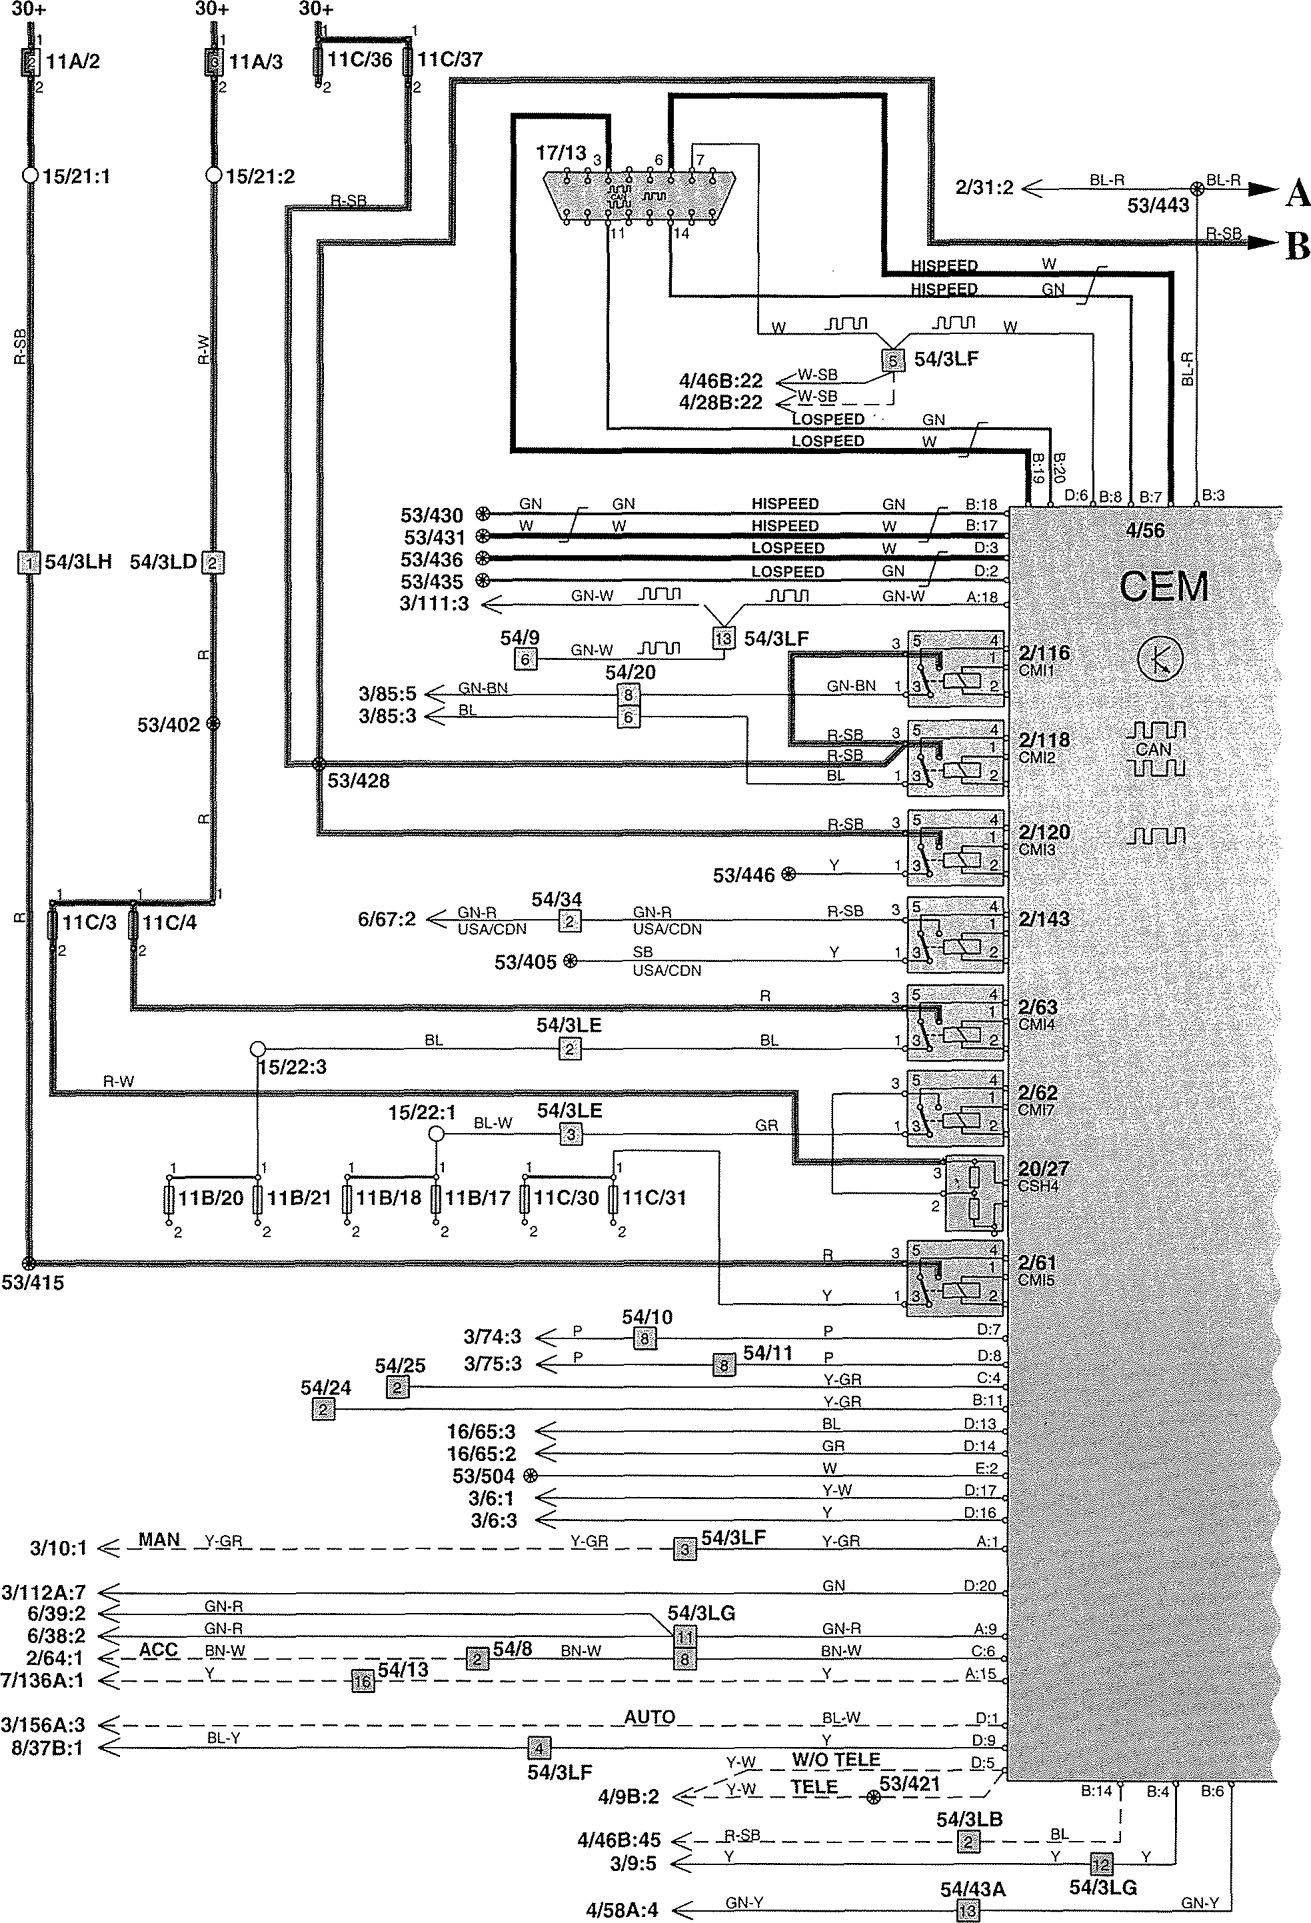 volvo V70 wiring diagram power distribution 1 2002?resize\=665%2C975 volvo xc v70 wiring diagram volvo v70 timing marks, volvo v70 volvo v70 trailer wiring diagram at edmiracle.co